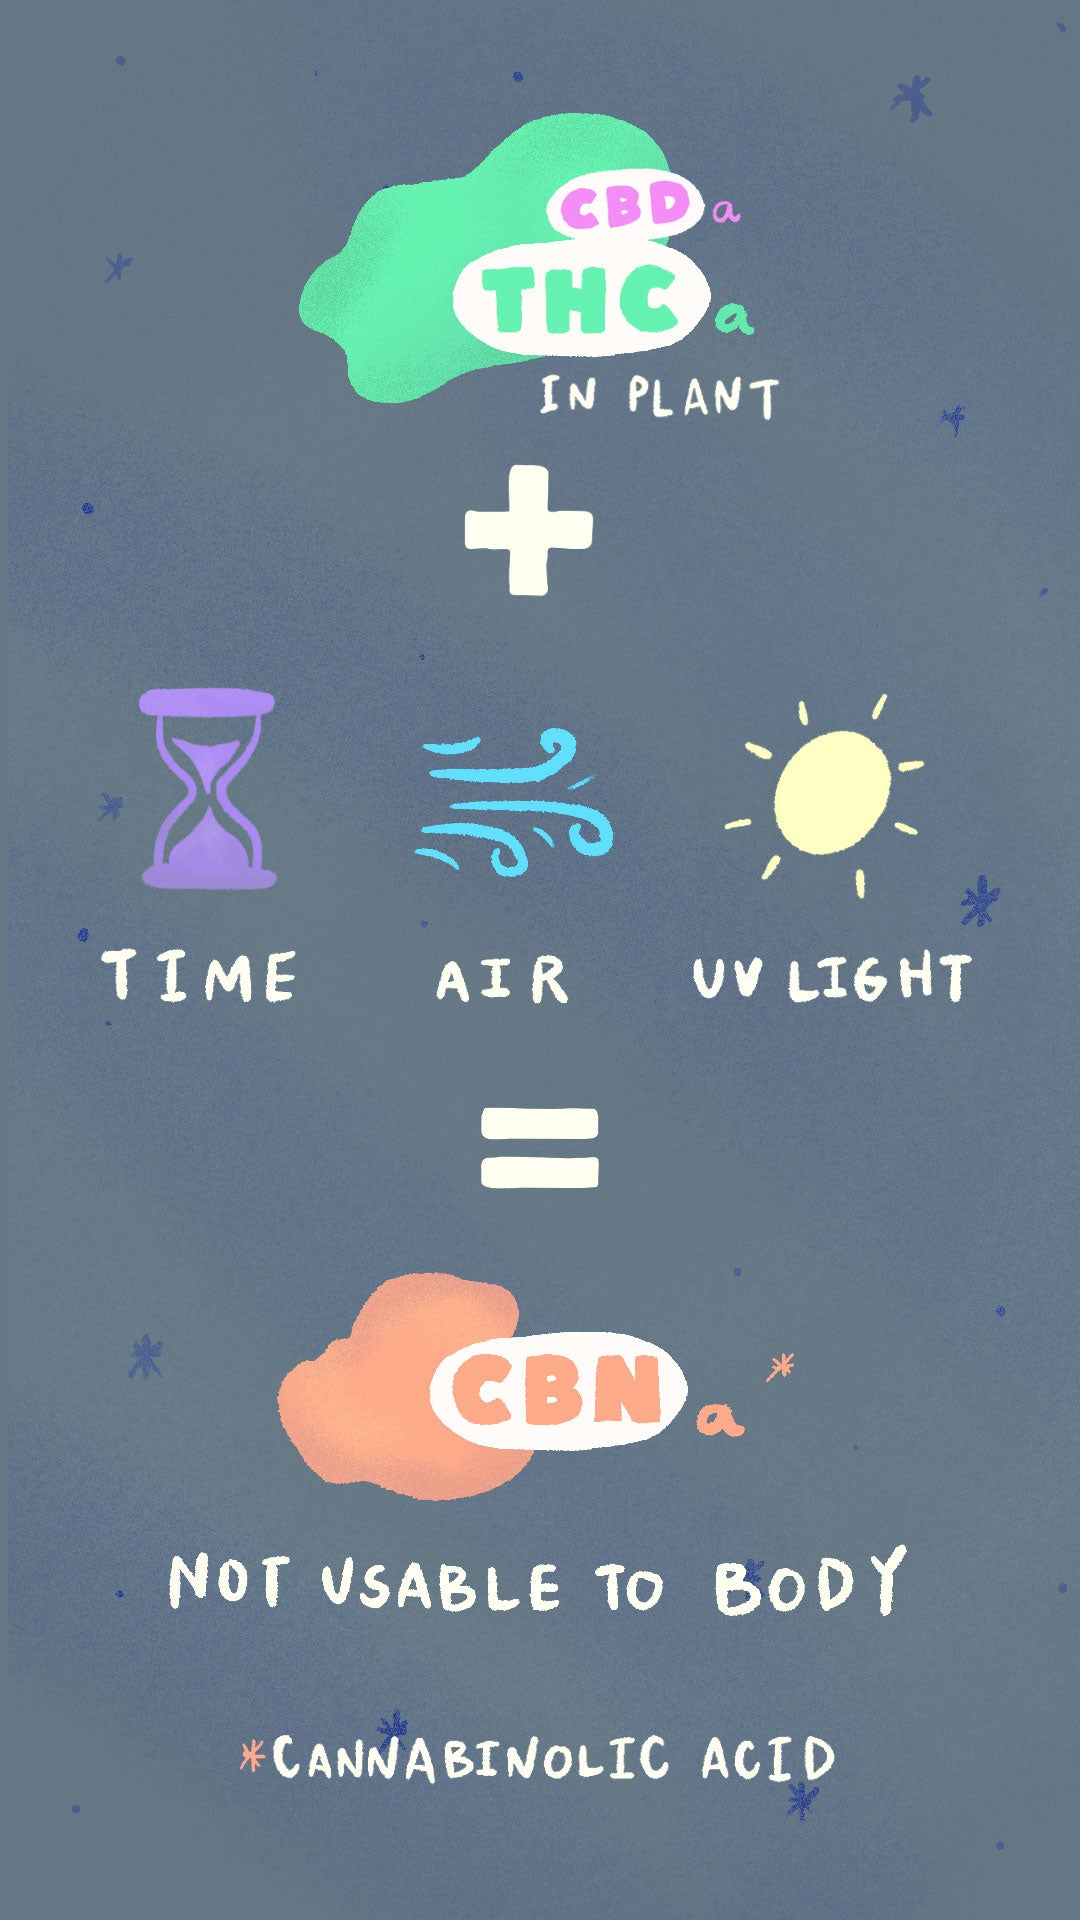 THCa in plant + time, air, UV light = CBNa, which is not usable to the body. *cannabinolic acid